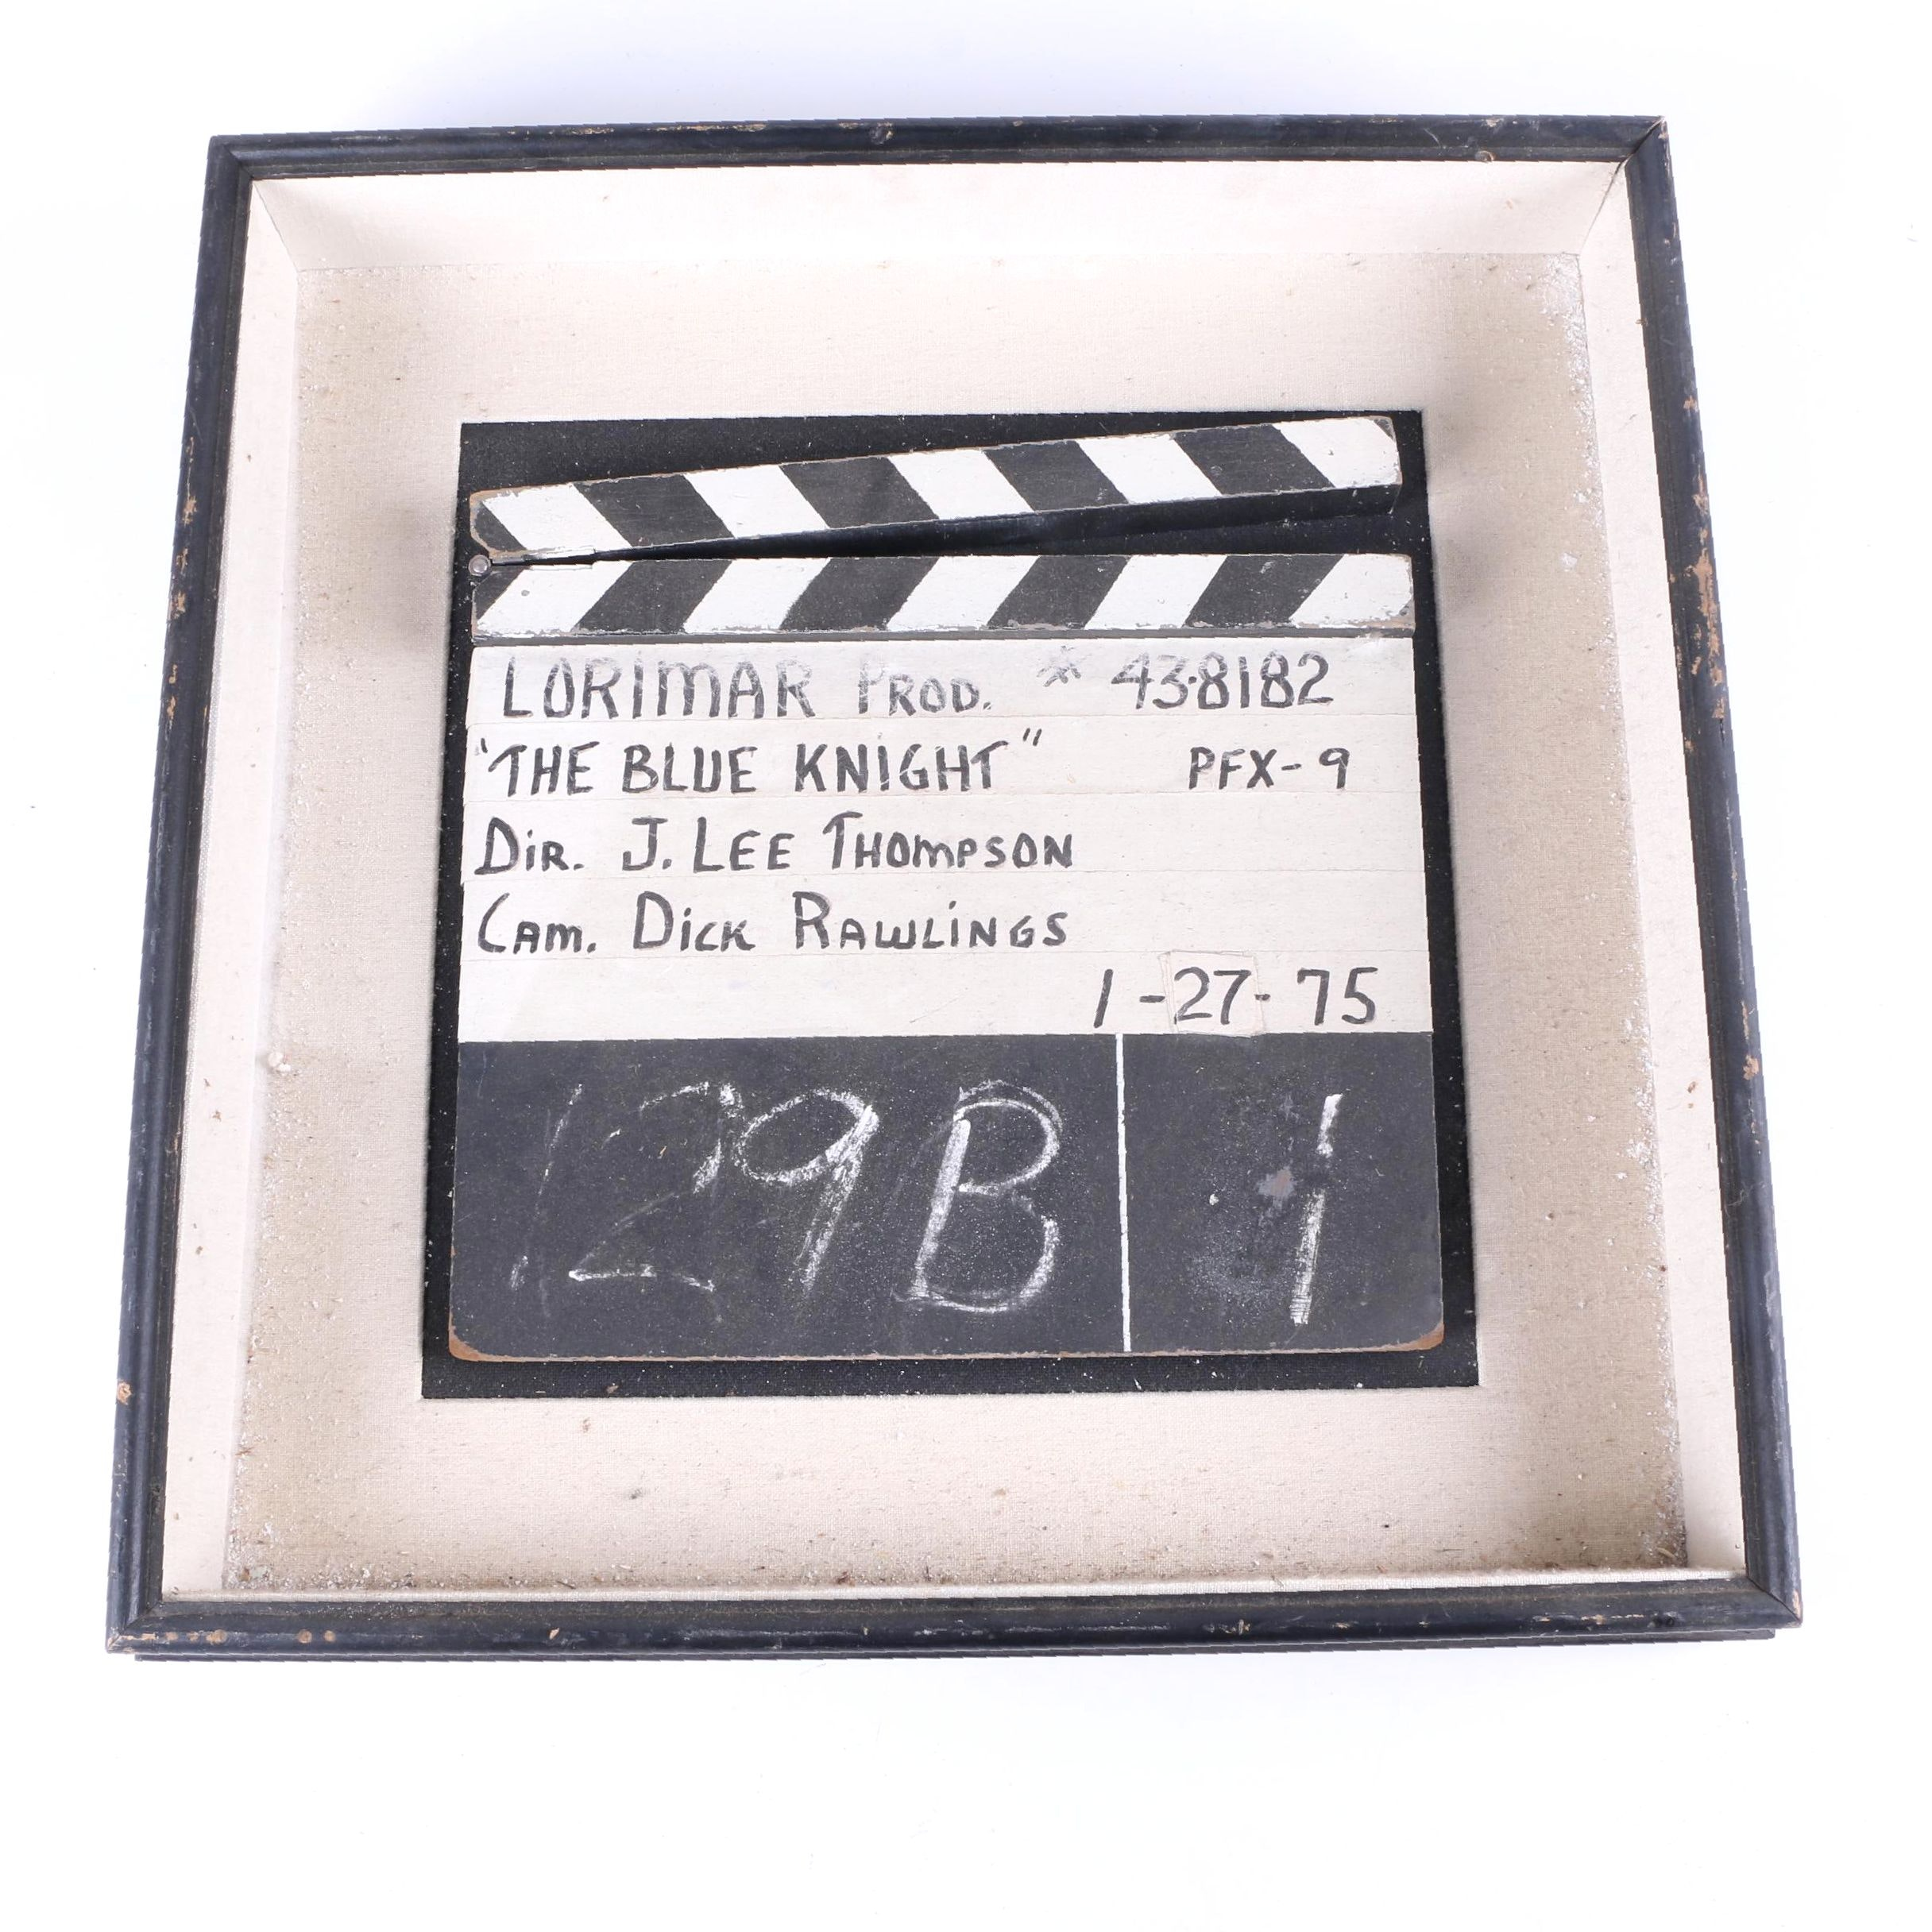 """Clapper Board for """"The Blue Knight"""" TV Series Directed by J. Lee Thompson"""